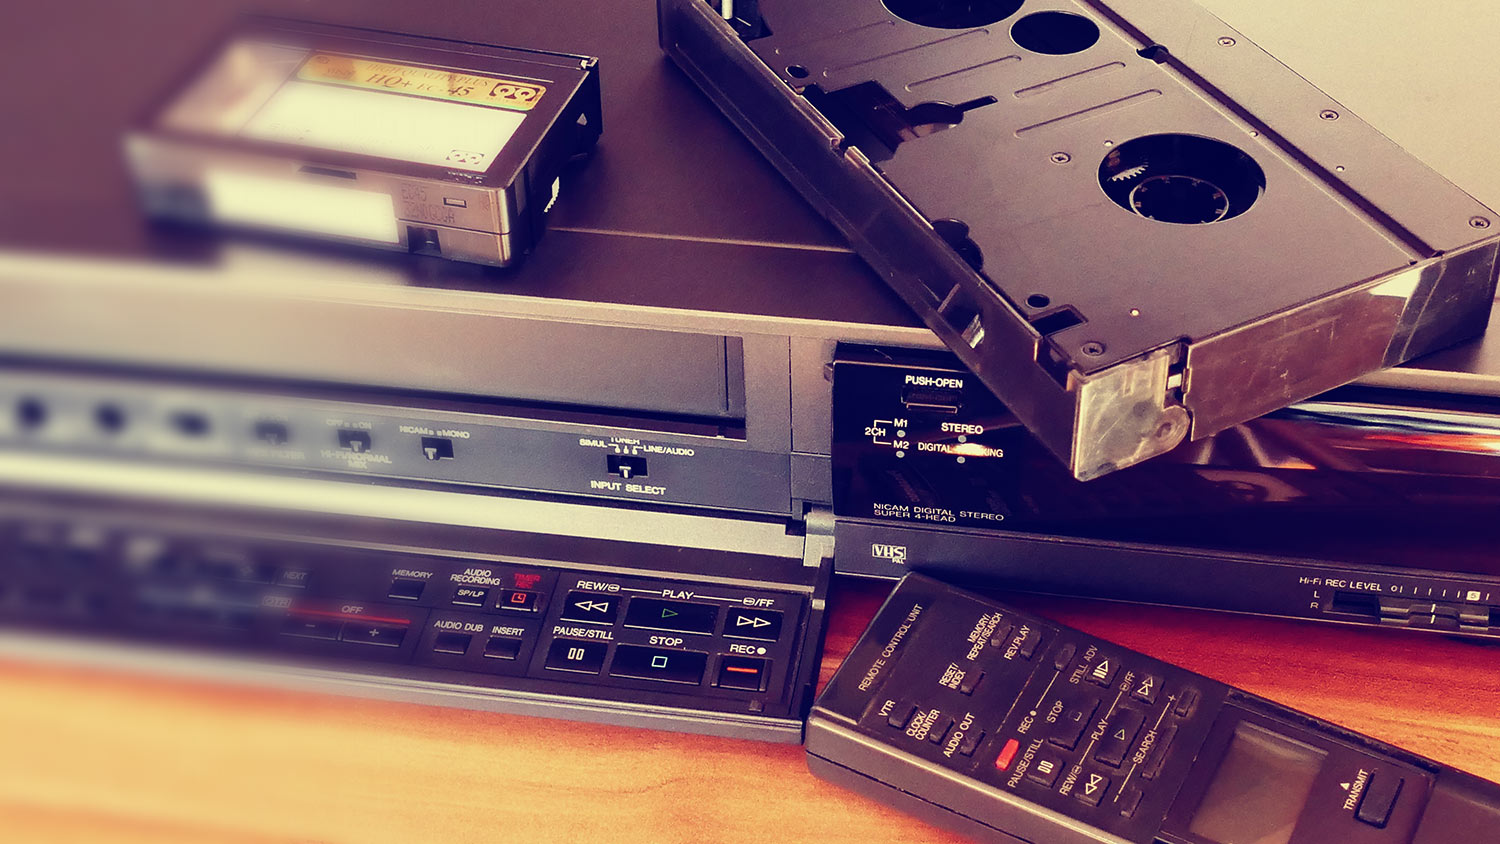 VHS Player with Tapes and Remote